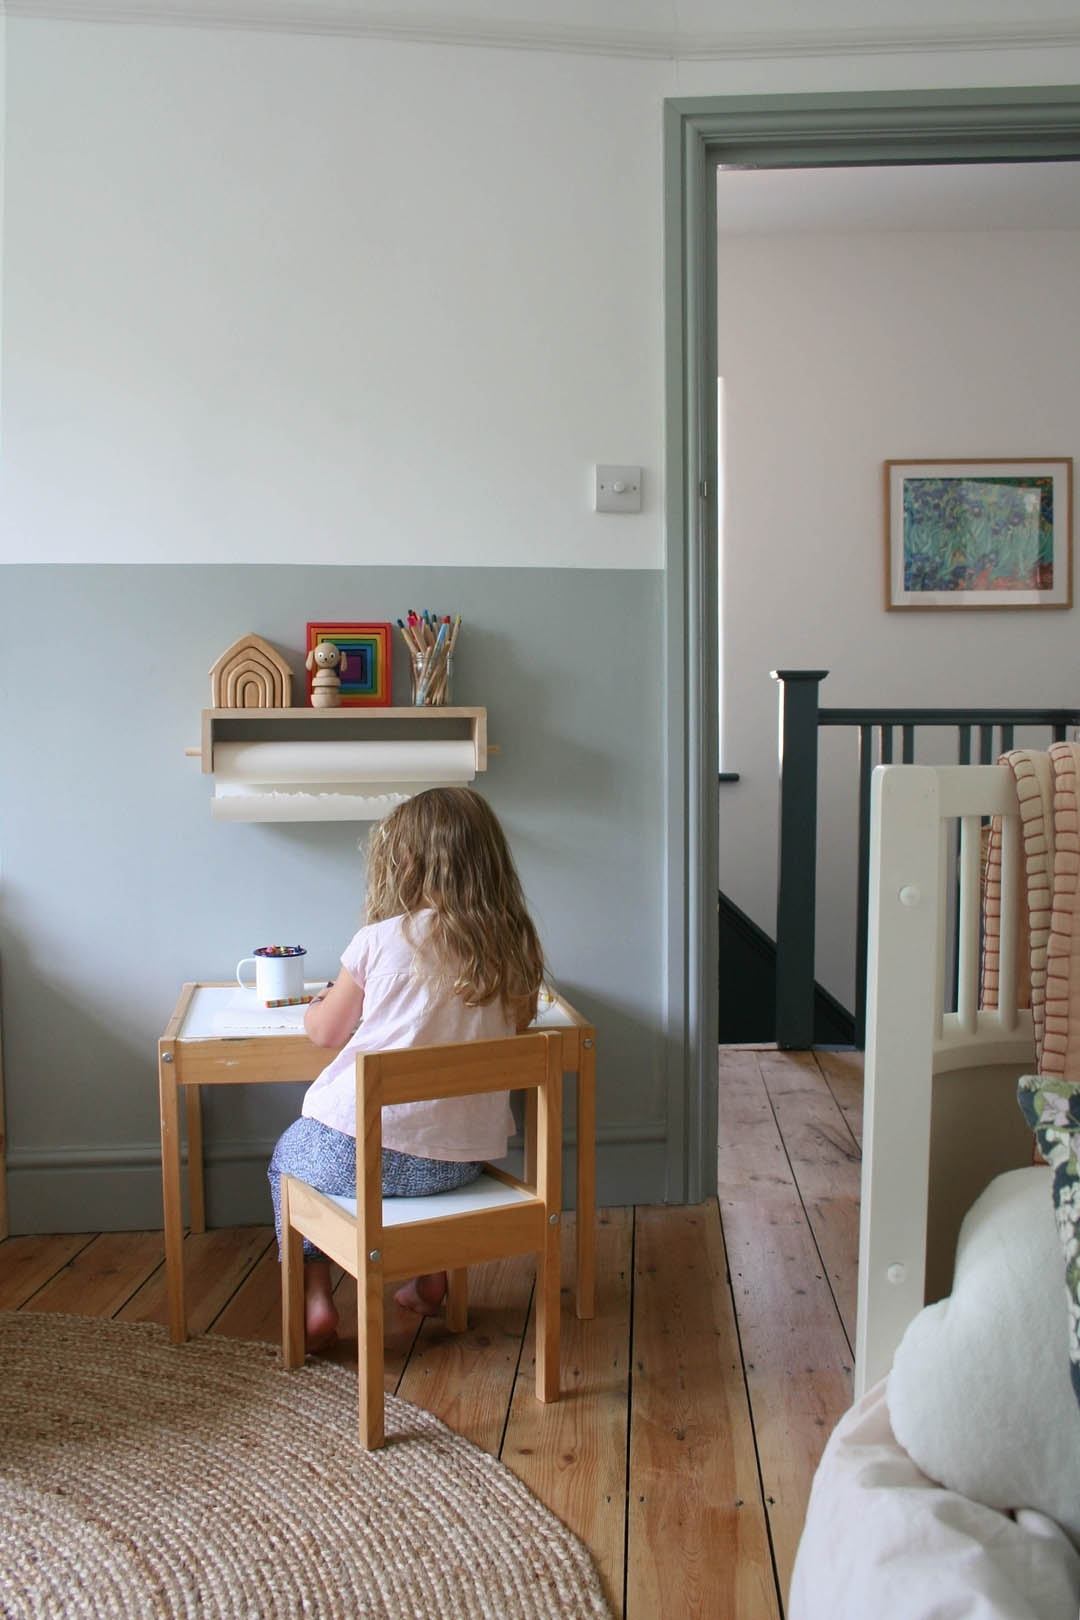 How To Do A Half Painted Wall For A Child'S Bedroom Farrow And Ball Light Blue Living Room